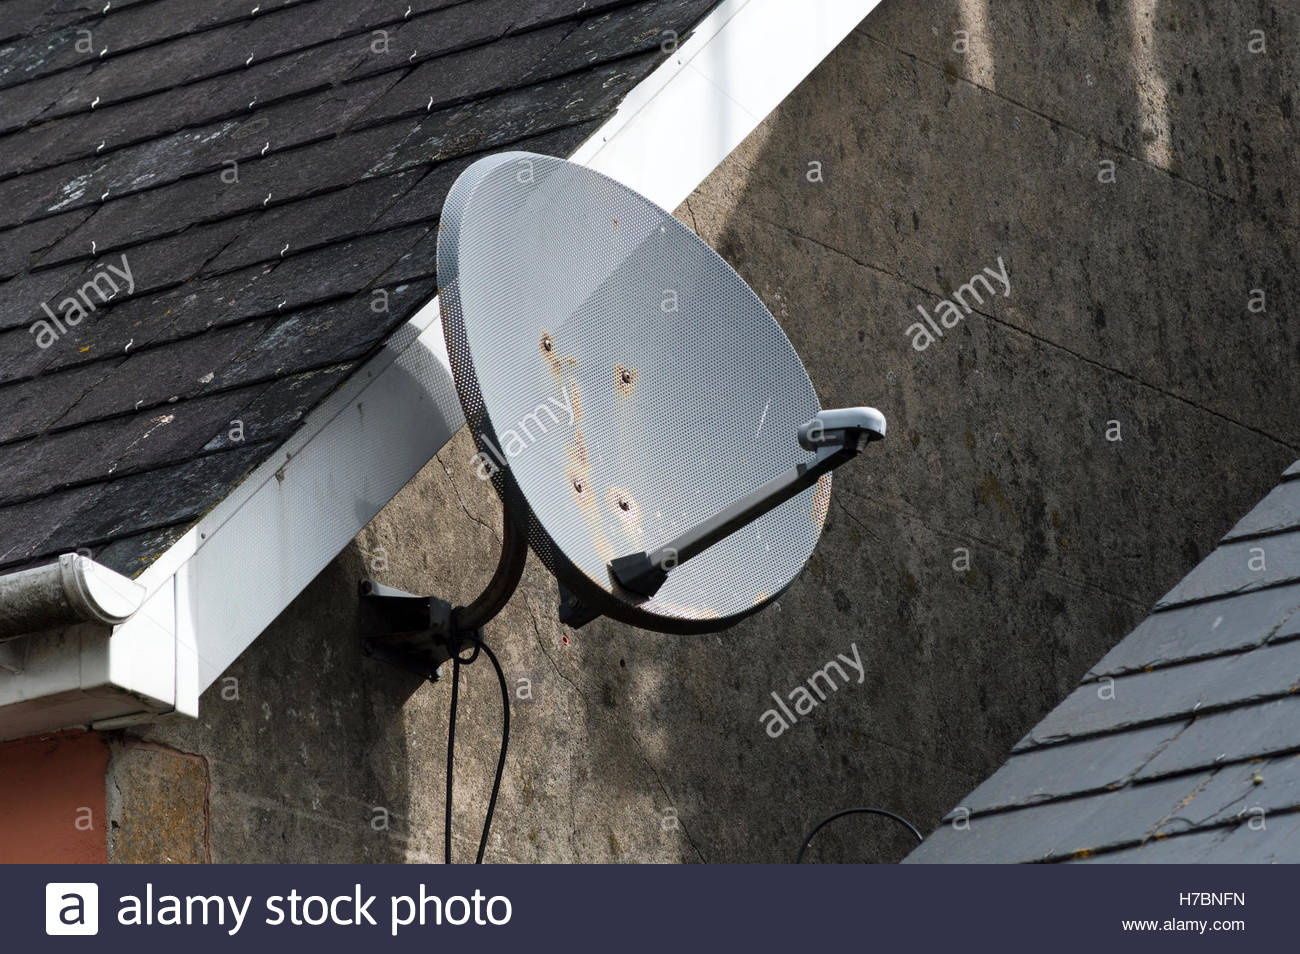 Close-up of a satellite dish on the end wall of a terraced house, Blandford Forum, Dorset England - Stock Image